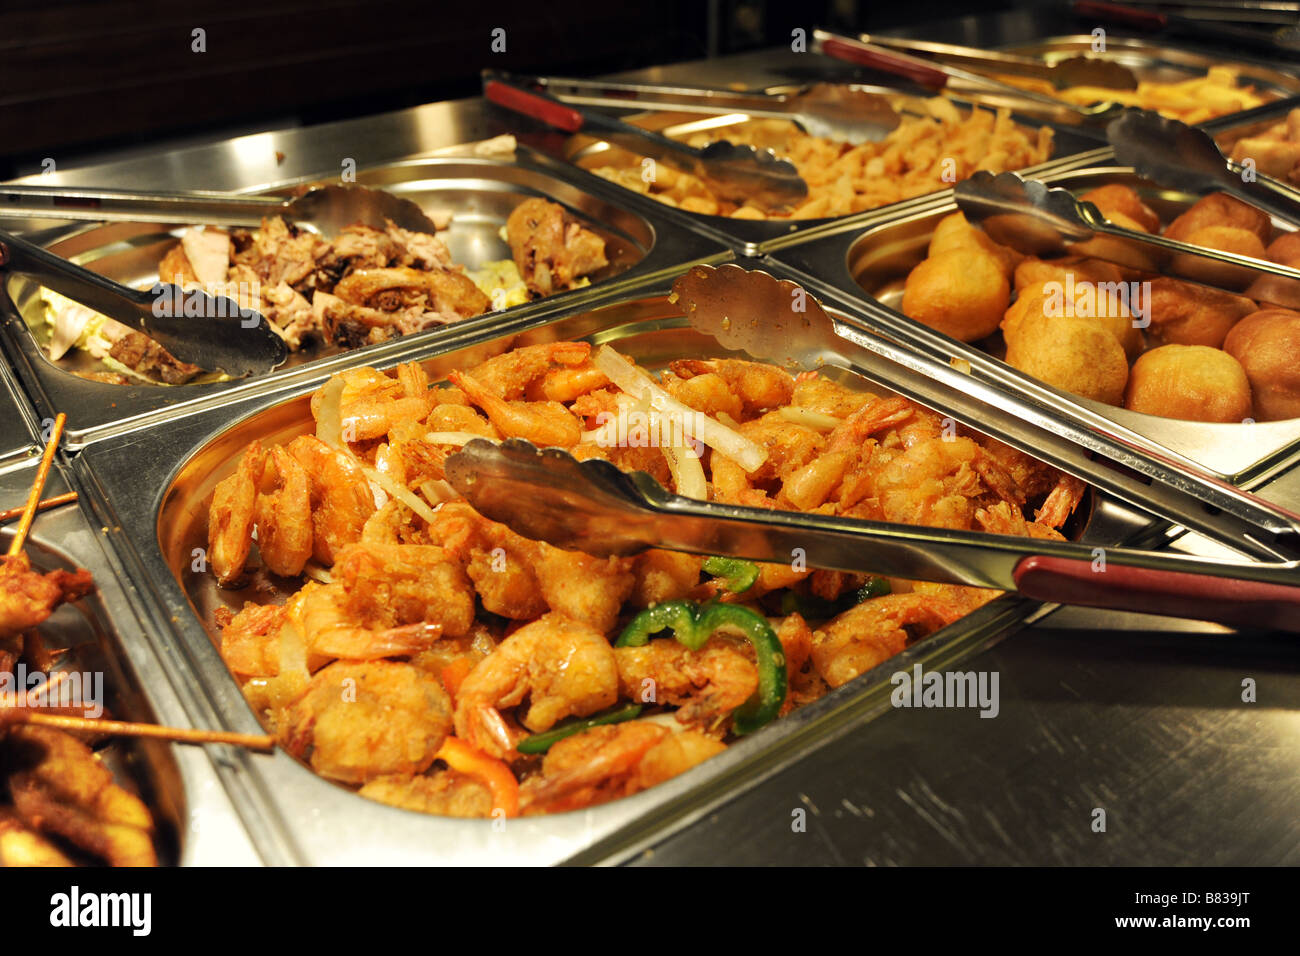 Chinese food dishes stock photos chinese food dishes stock images hot buffet food in a busy chinese restaurant bradford west yorkshire stock image forumfinder Image collections